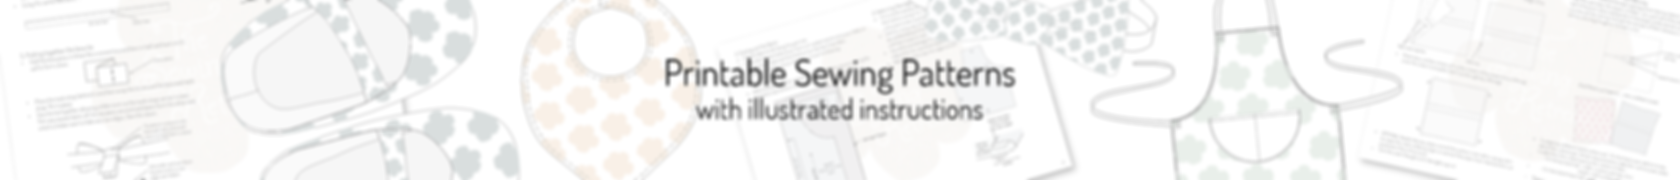 Printable PDF sewing patterns for beginners with easy to undestand illustrated instructions